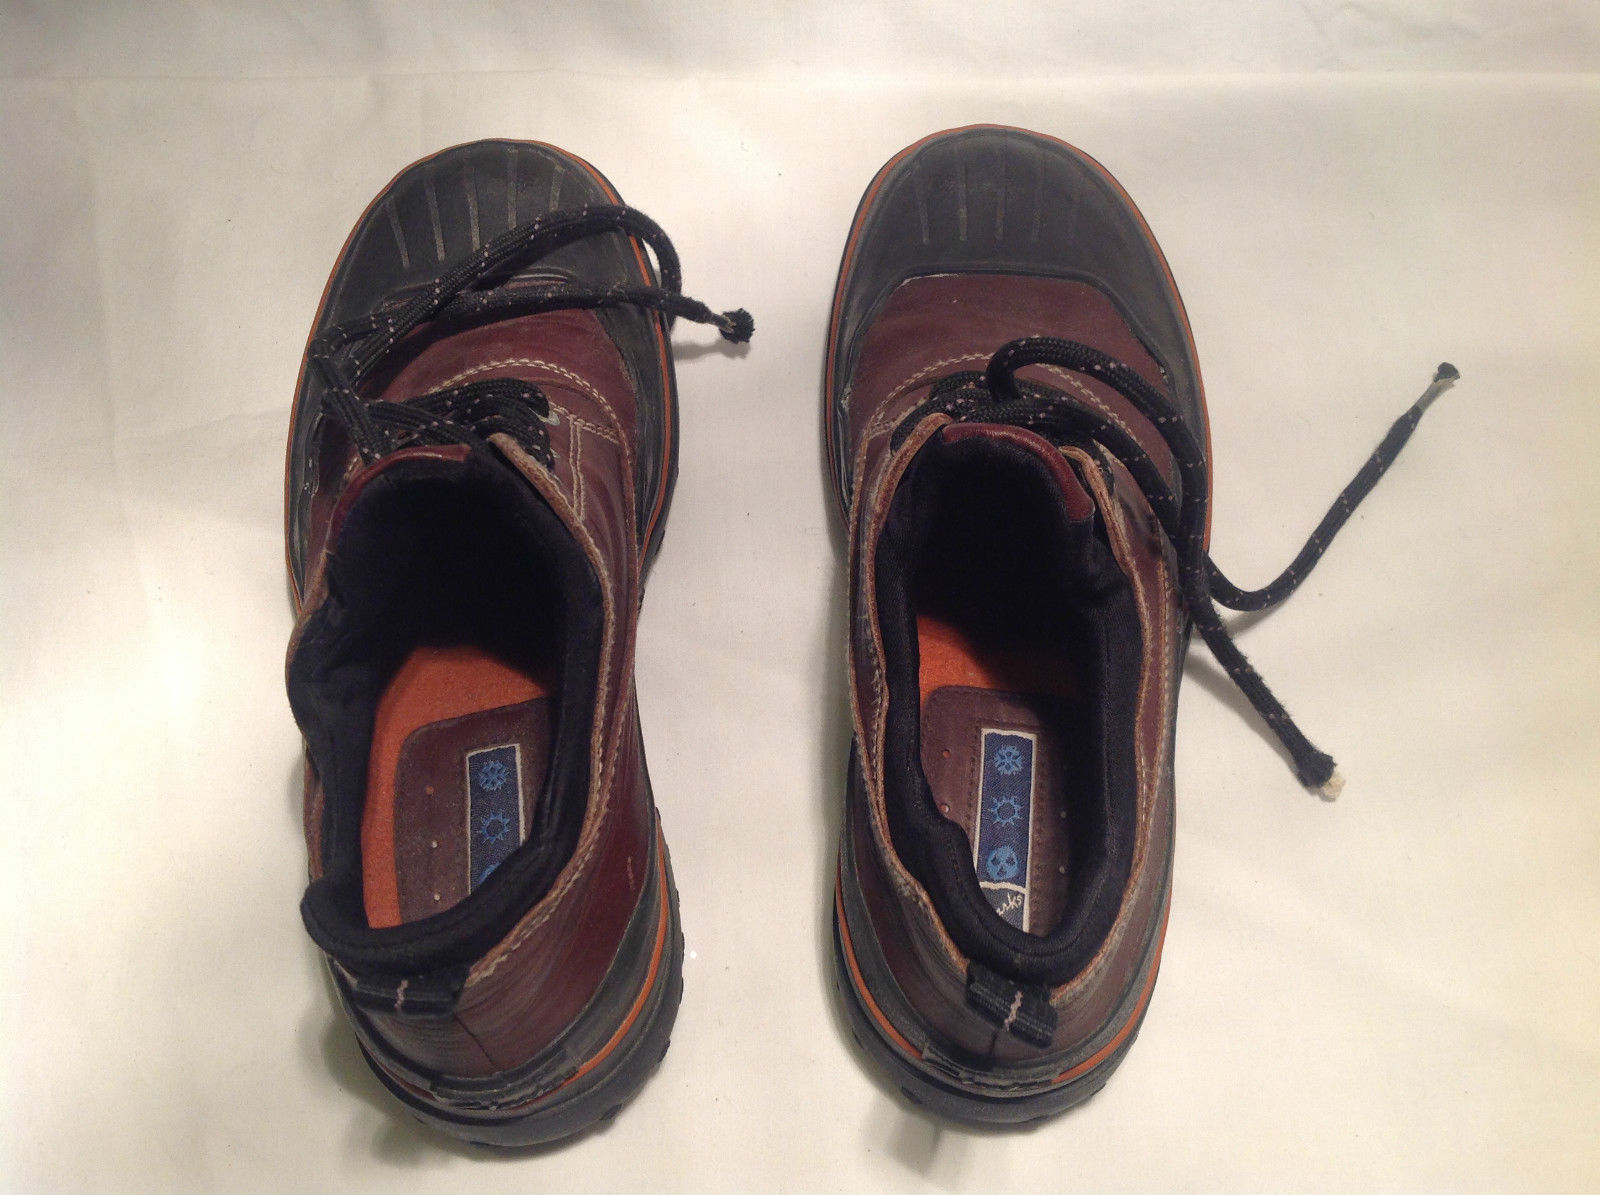 Clarks Short Boots Brown with Black Sole Waterproof Orange Insole Size 8M